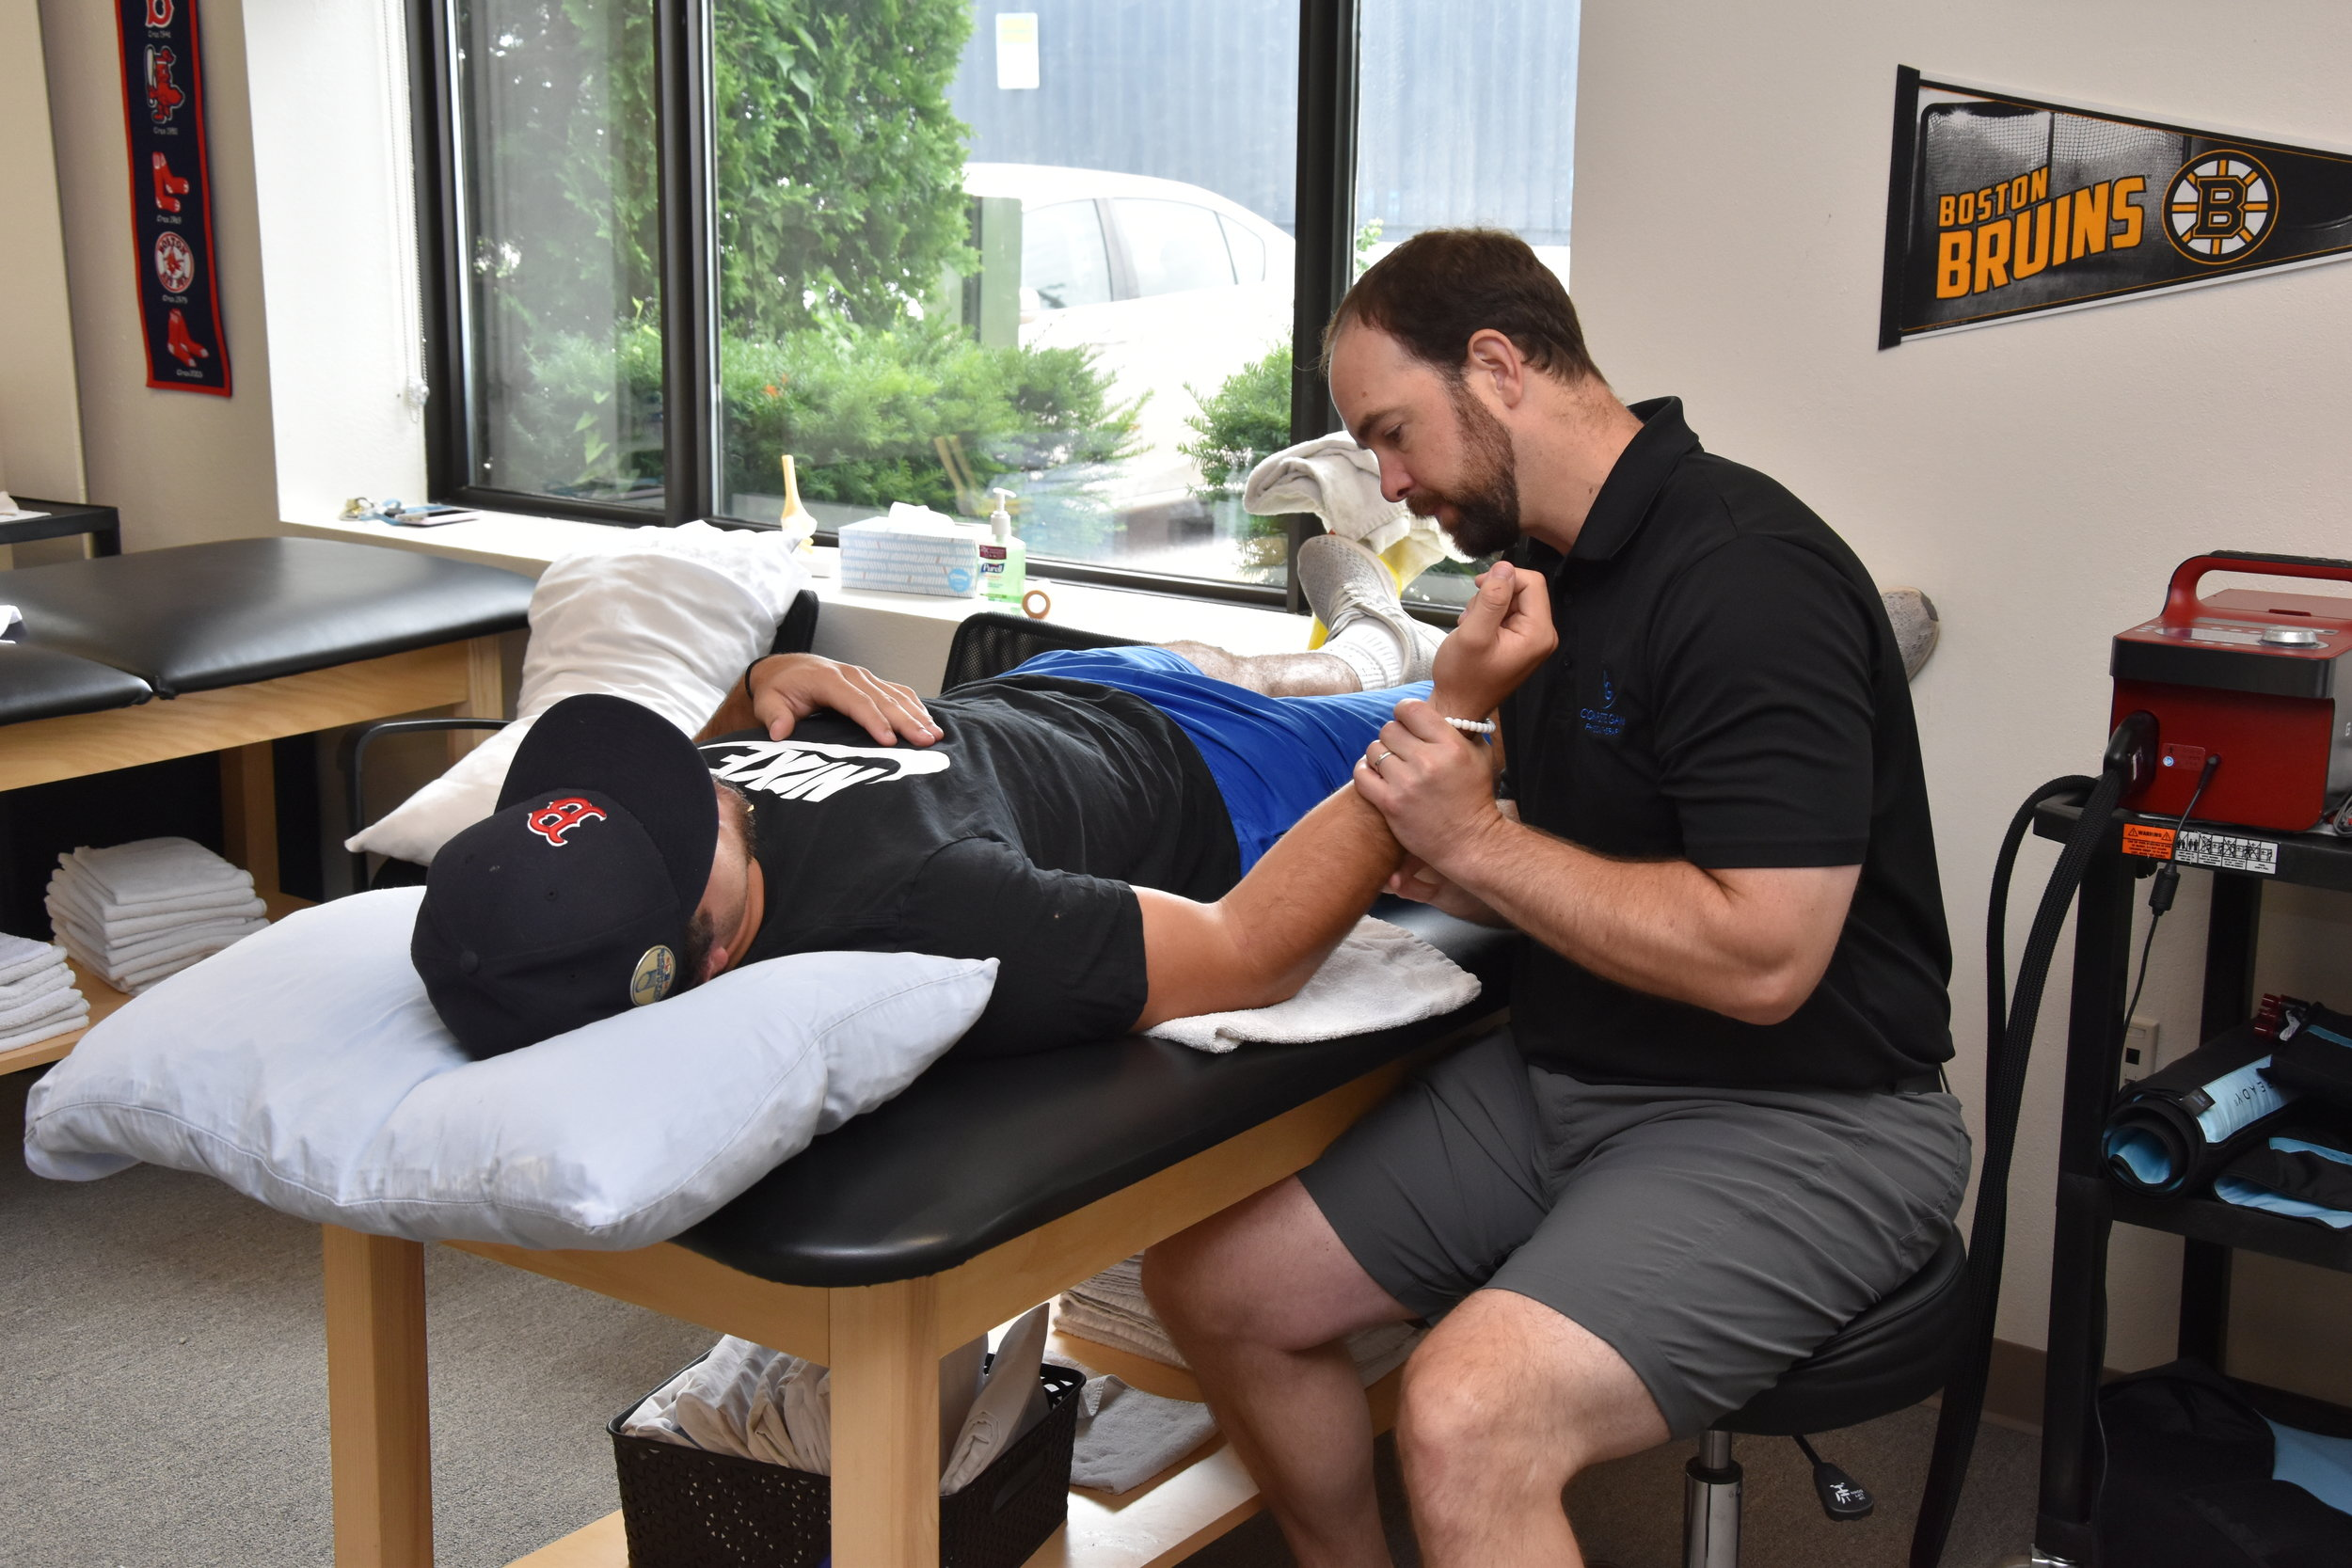 physical therapy services at complete game pt